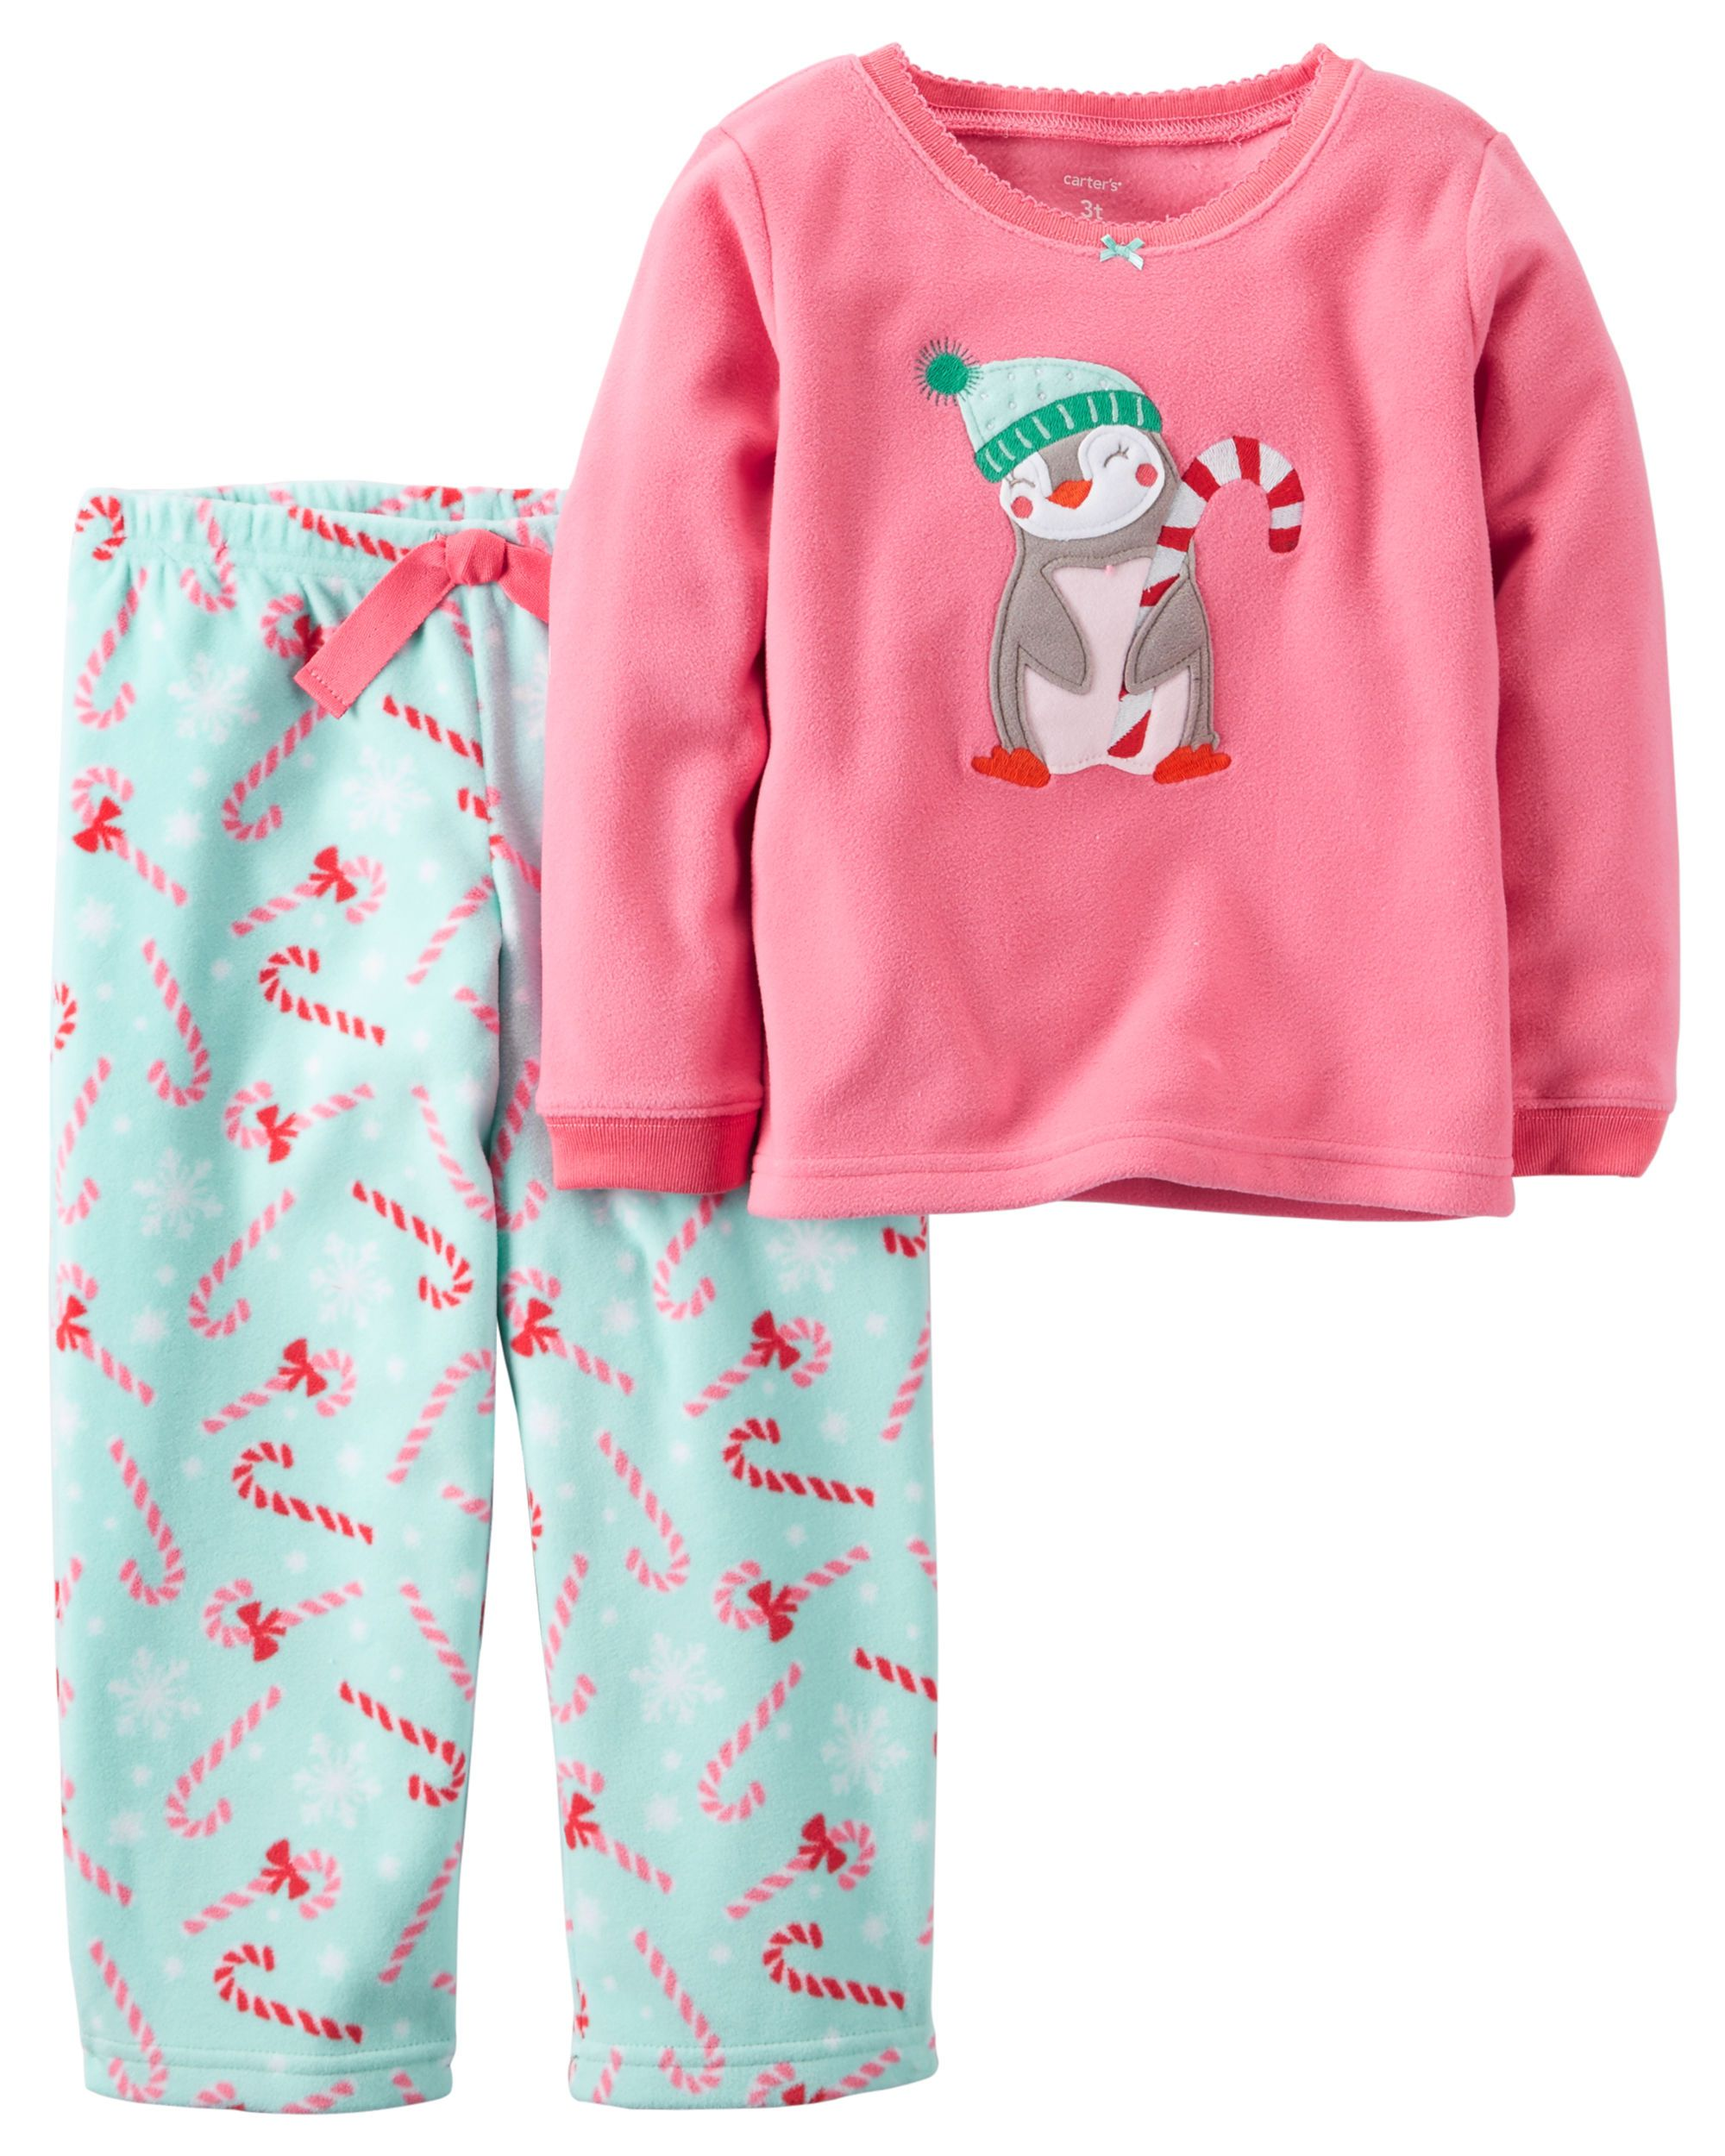 08bc5dc4610e Toddler Girl 2-Piece Fleece Christmas PJs from Carters.com. Shop ...